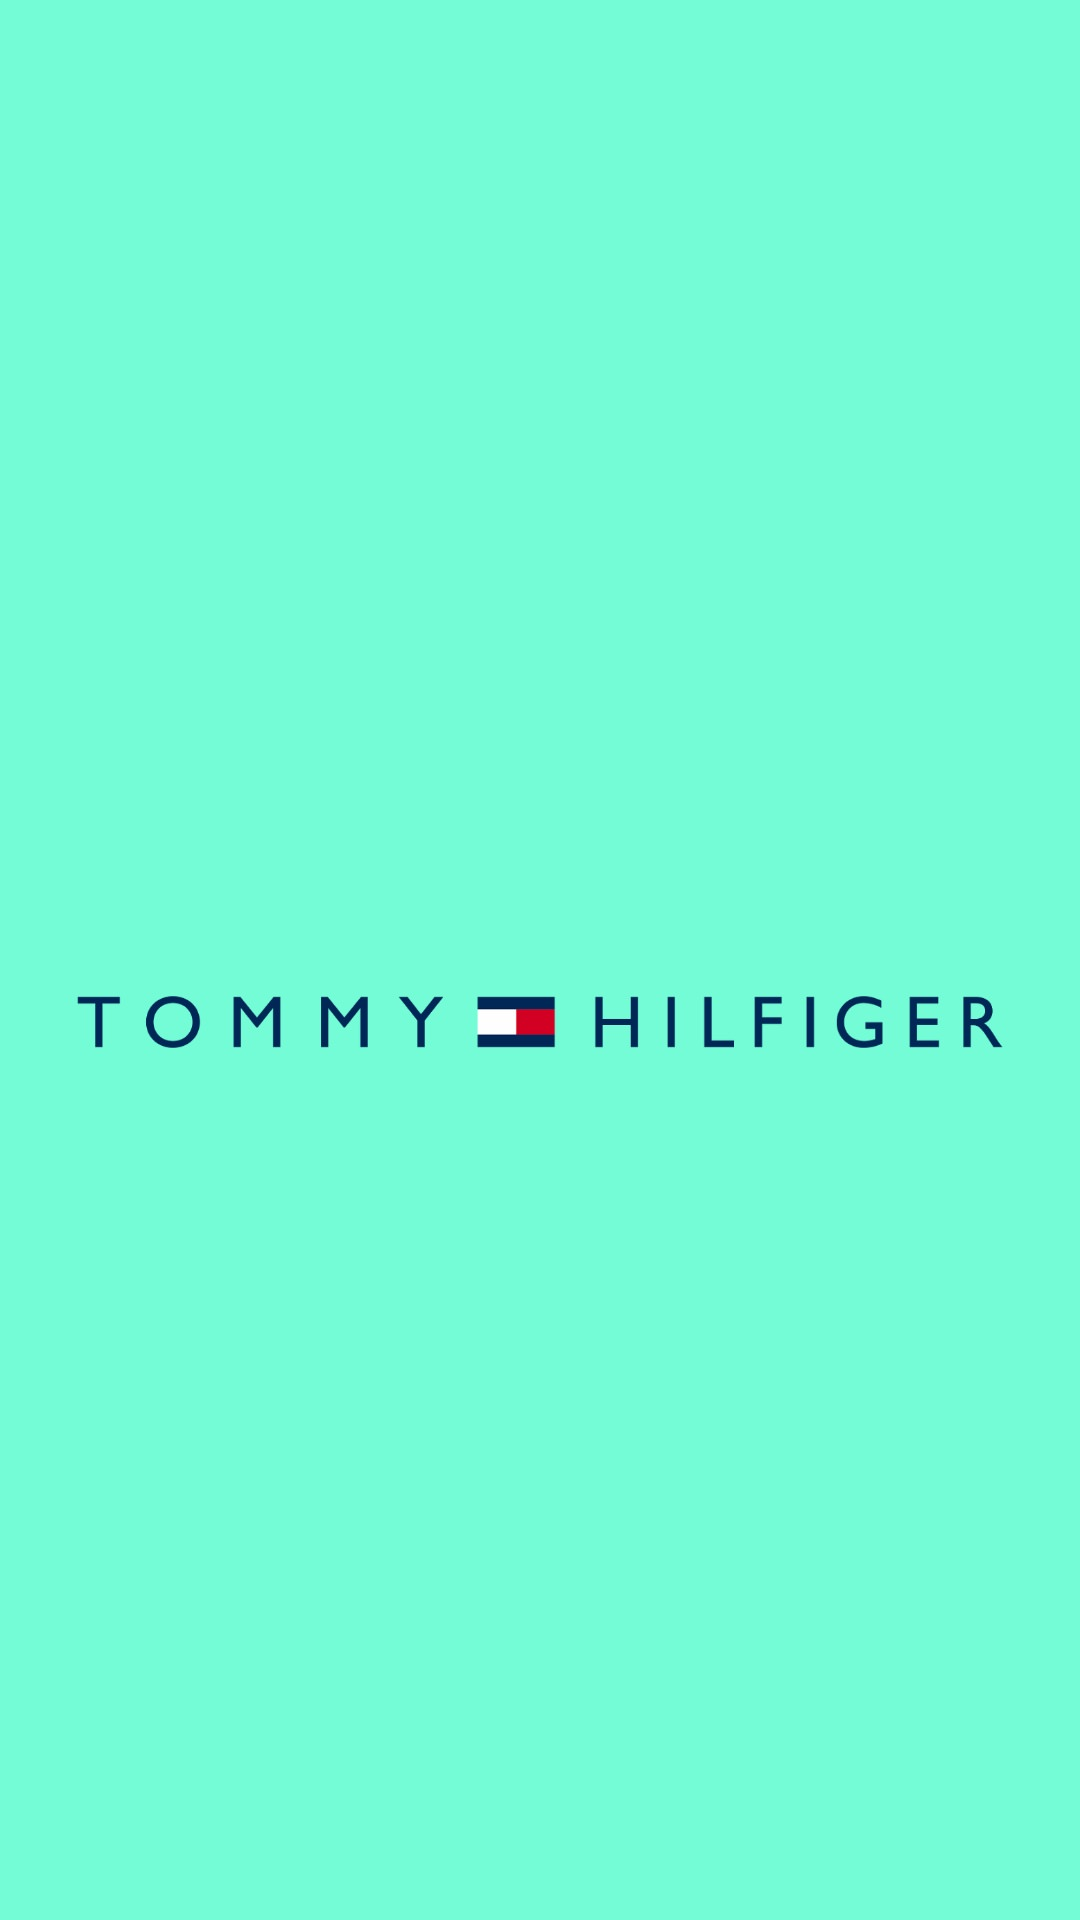 tommyhilfiger09 - TOMMY HILFIGER/トミー・ヒルフィガーの高画質スマホ壁紙20枚 [iPhone&Androidに対応]